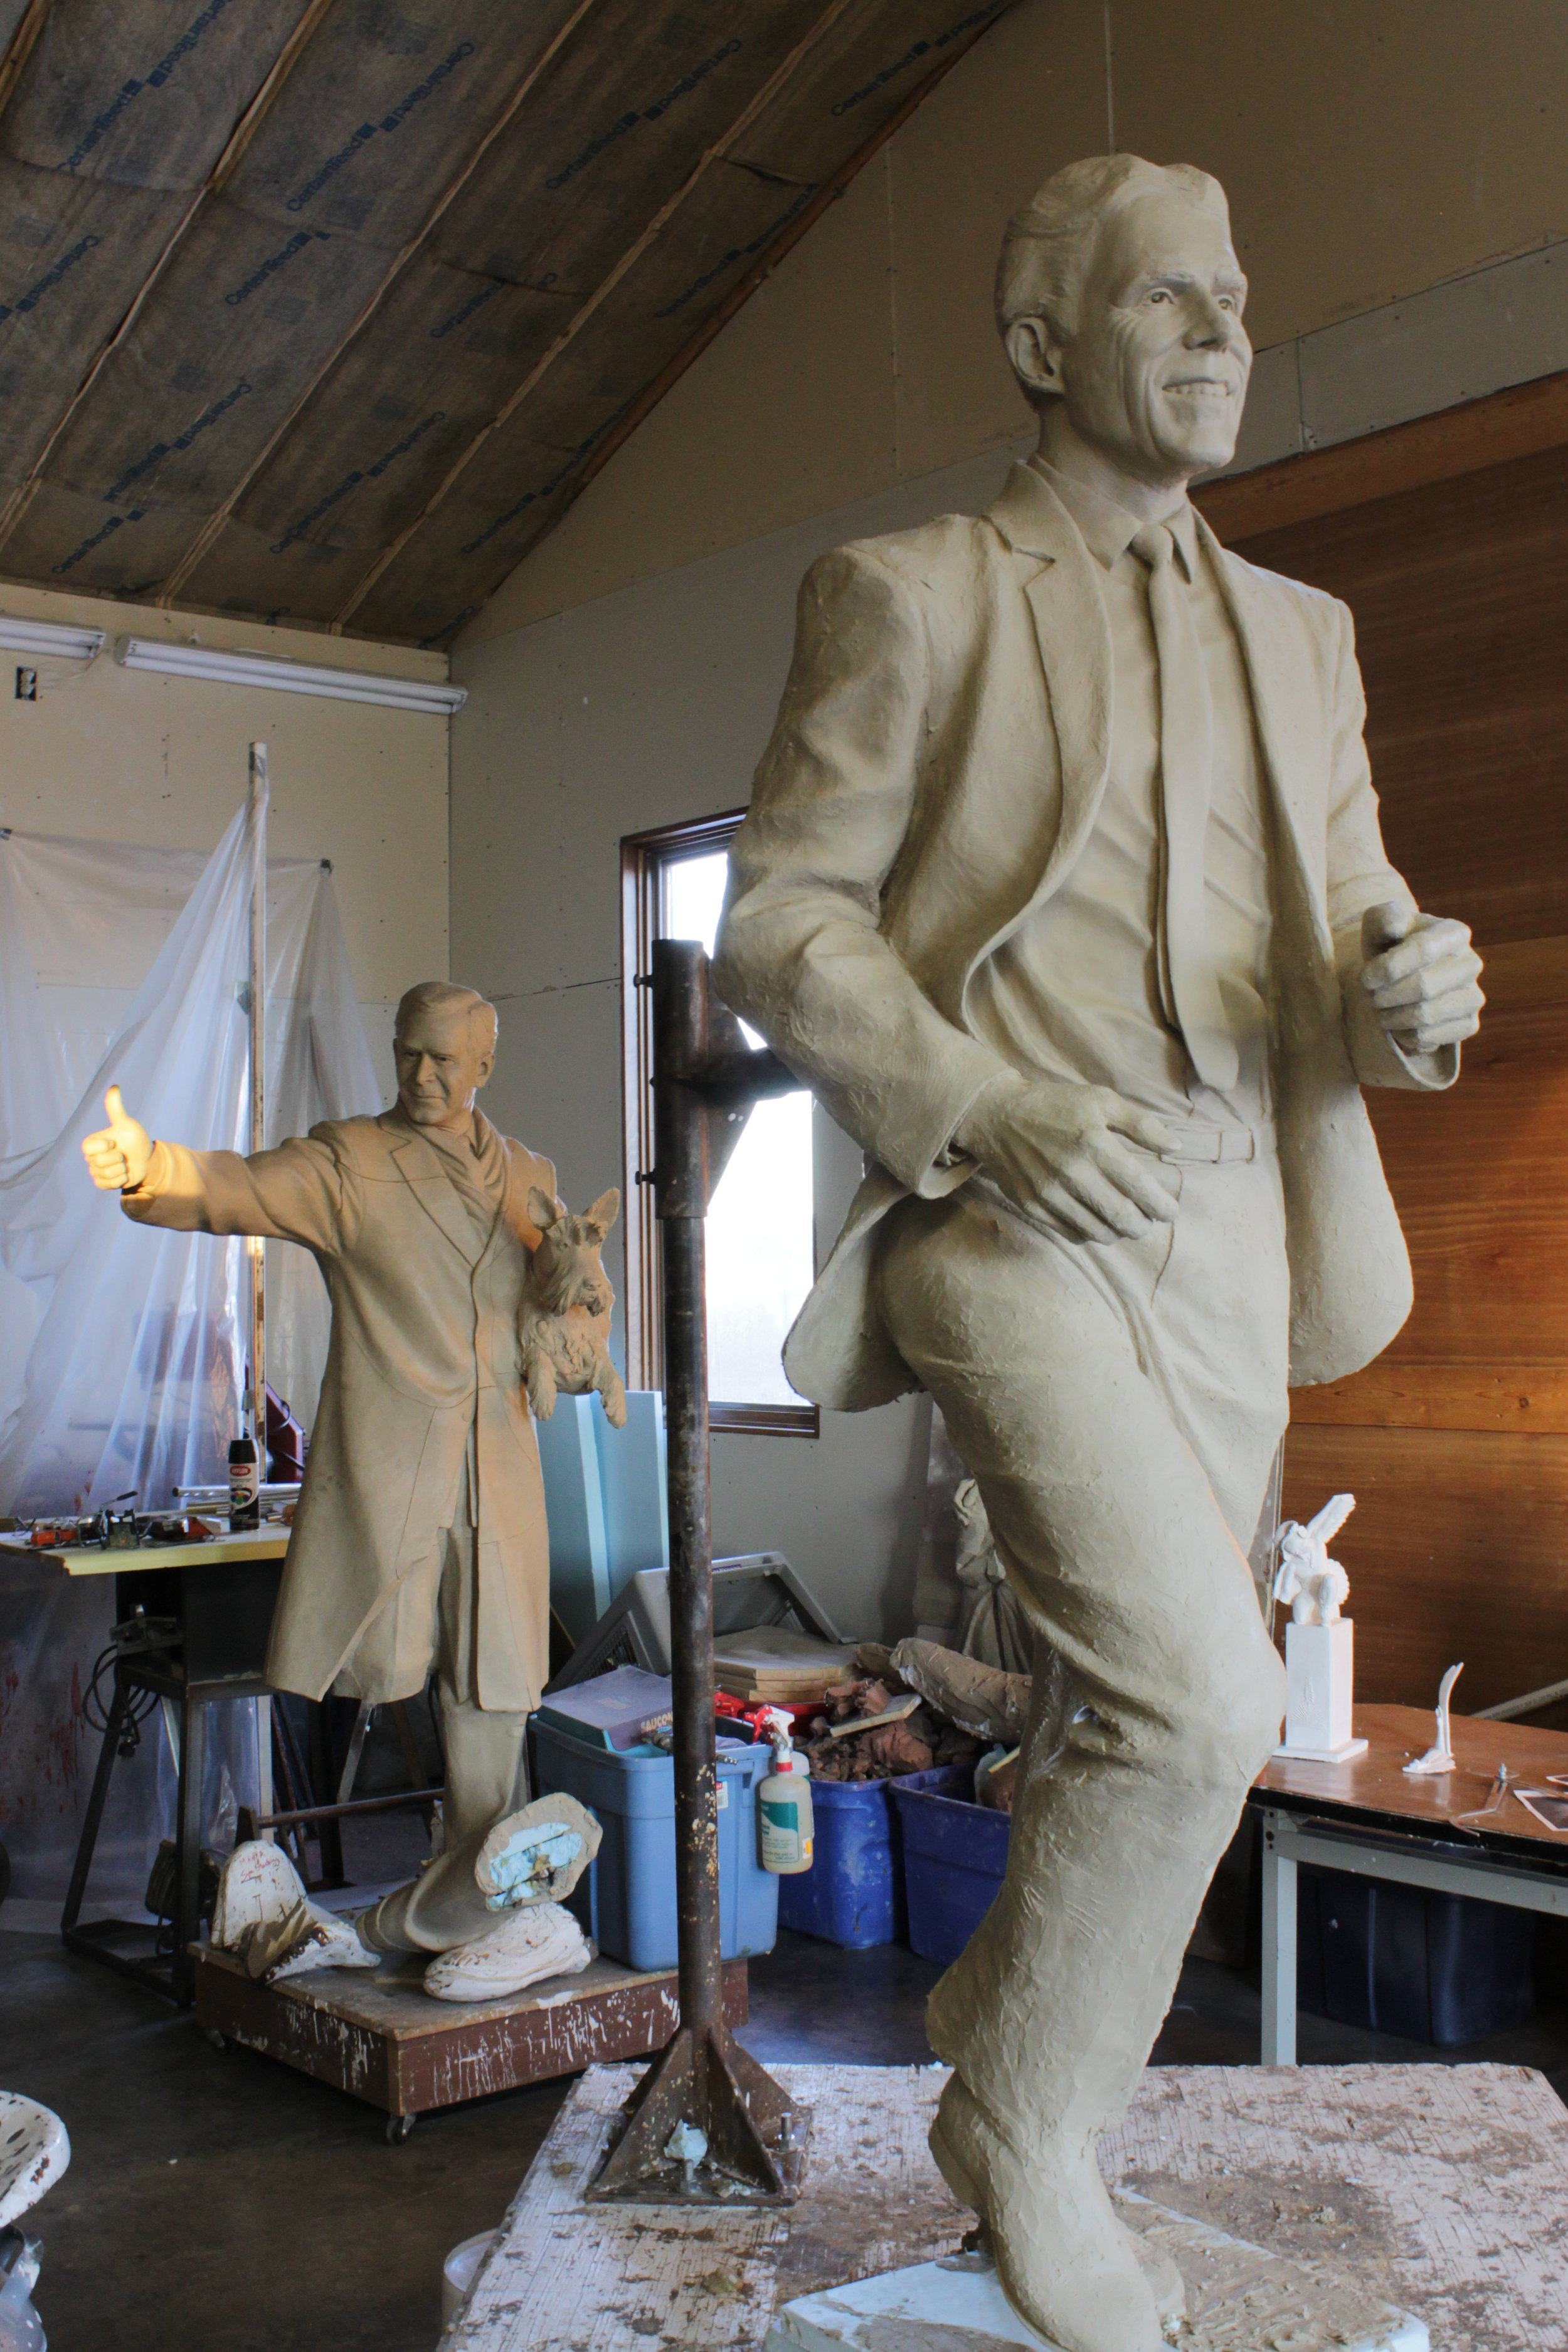 I ran across this picture of Frank's sculpture in progress, with the remnants of the George W. Bush clay in the background. W seems to approve of it so far.